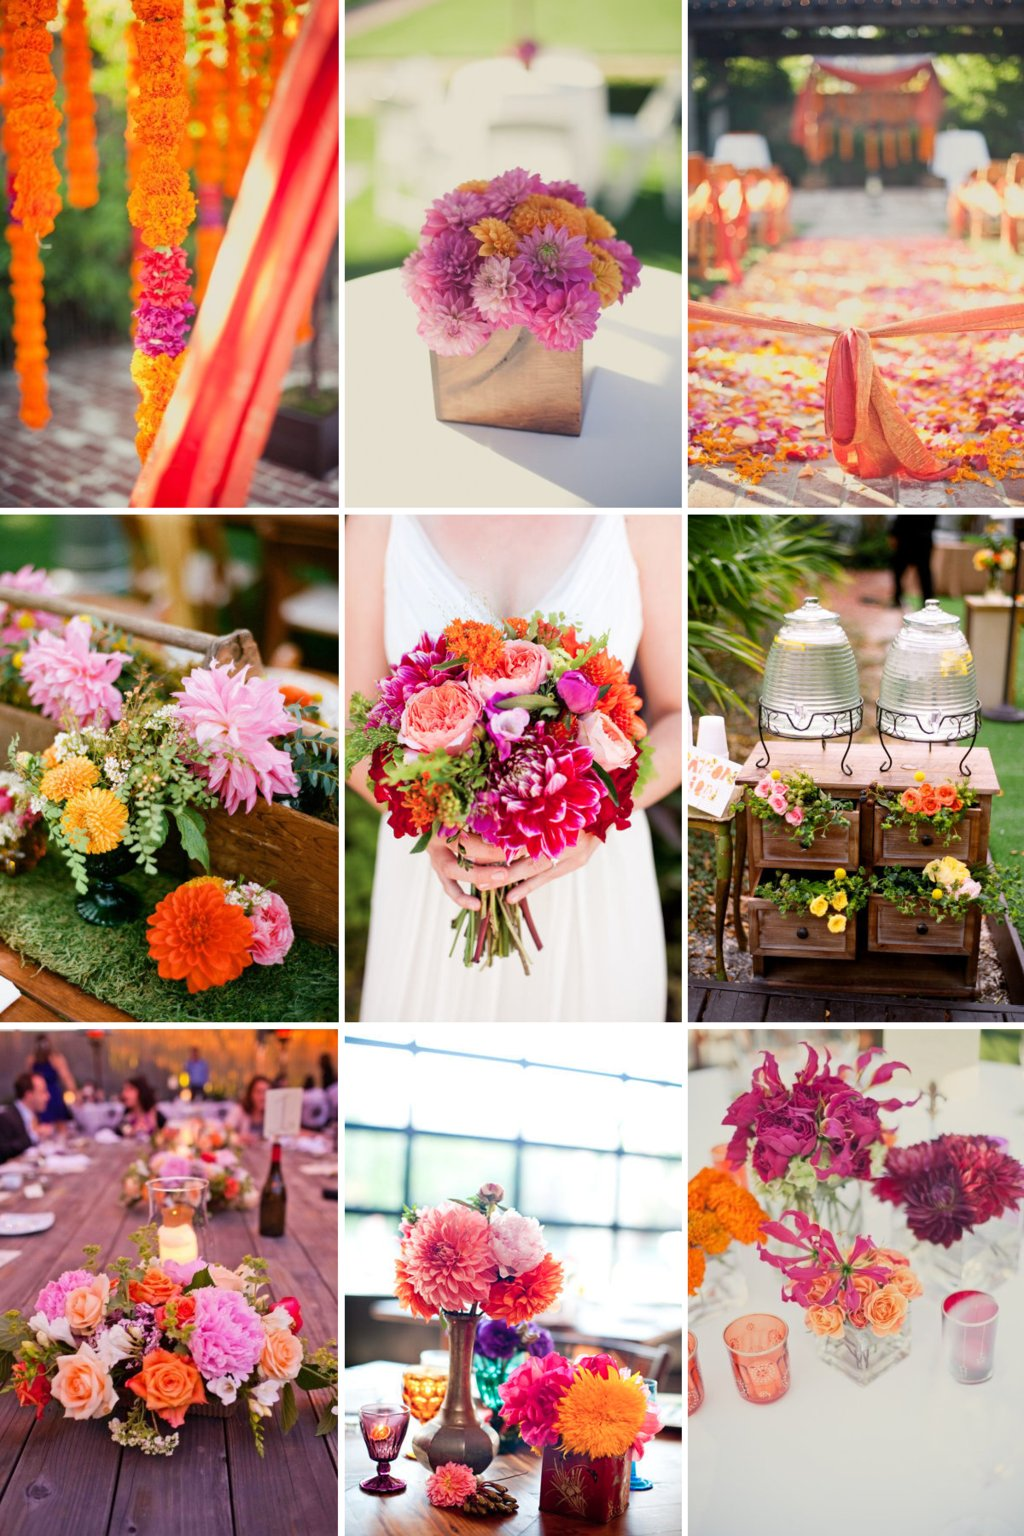 Wedding-color-palettes-berry-and-tangerine-outdoor-weddings.full